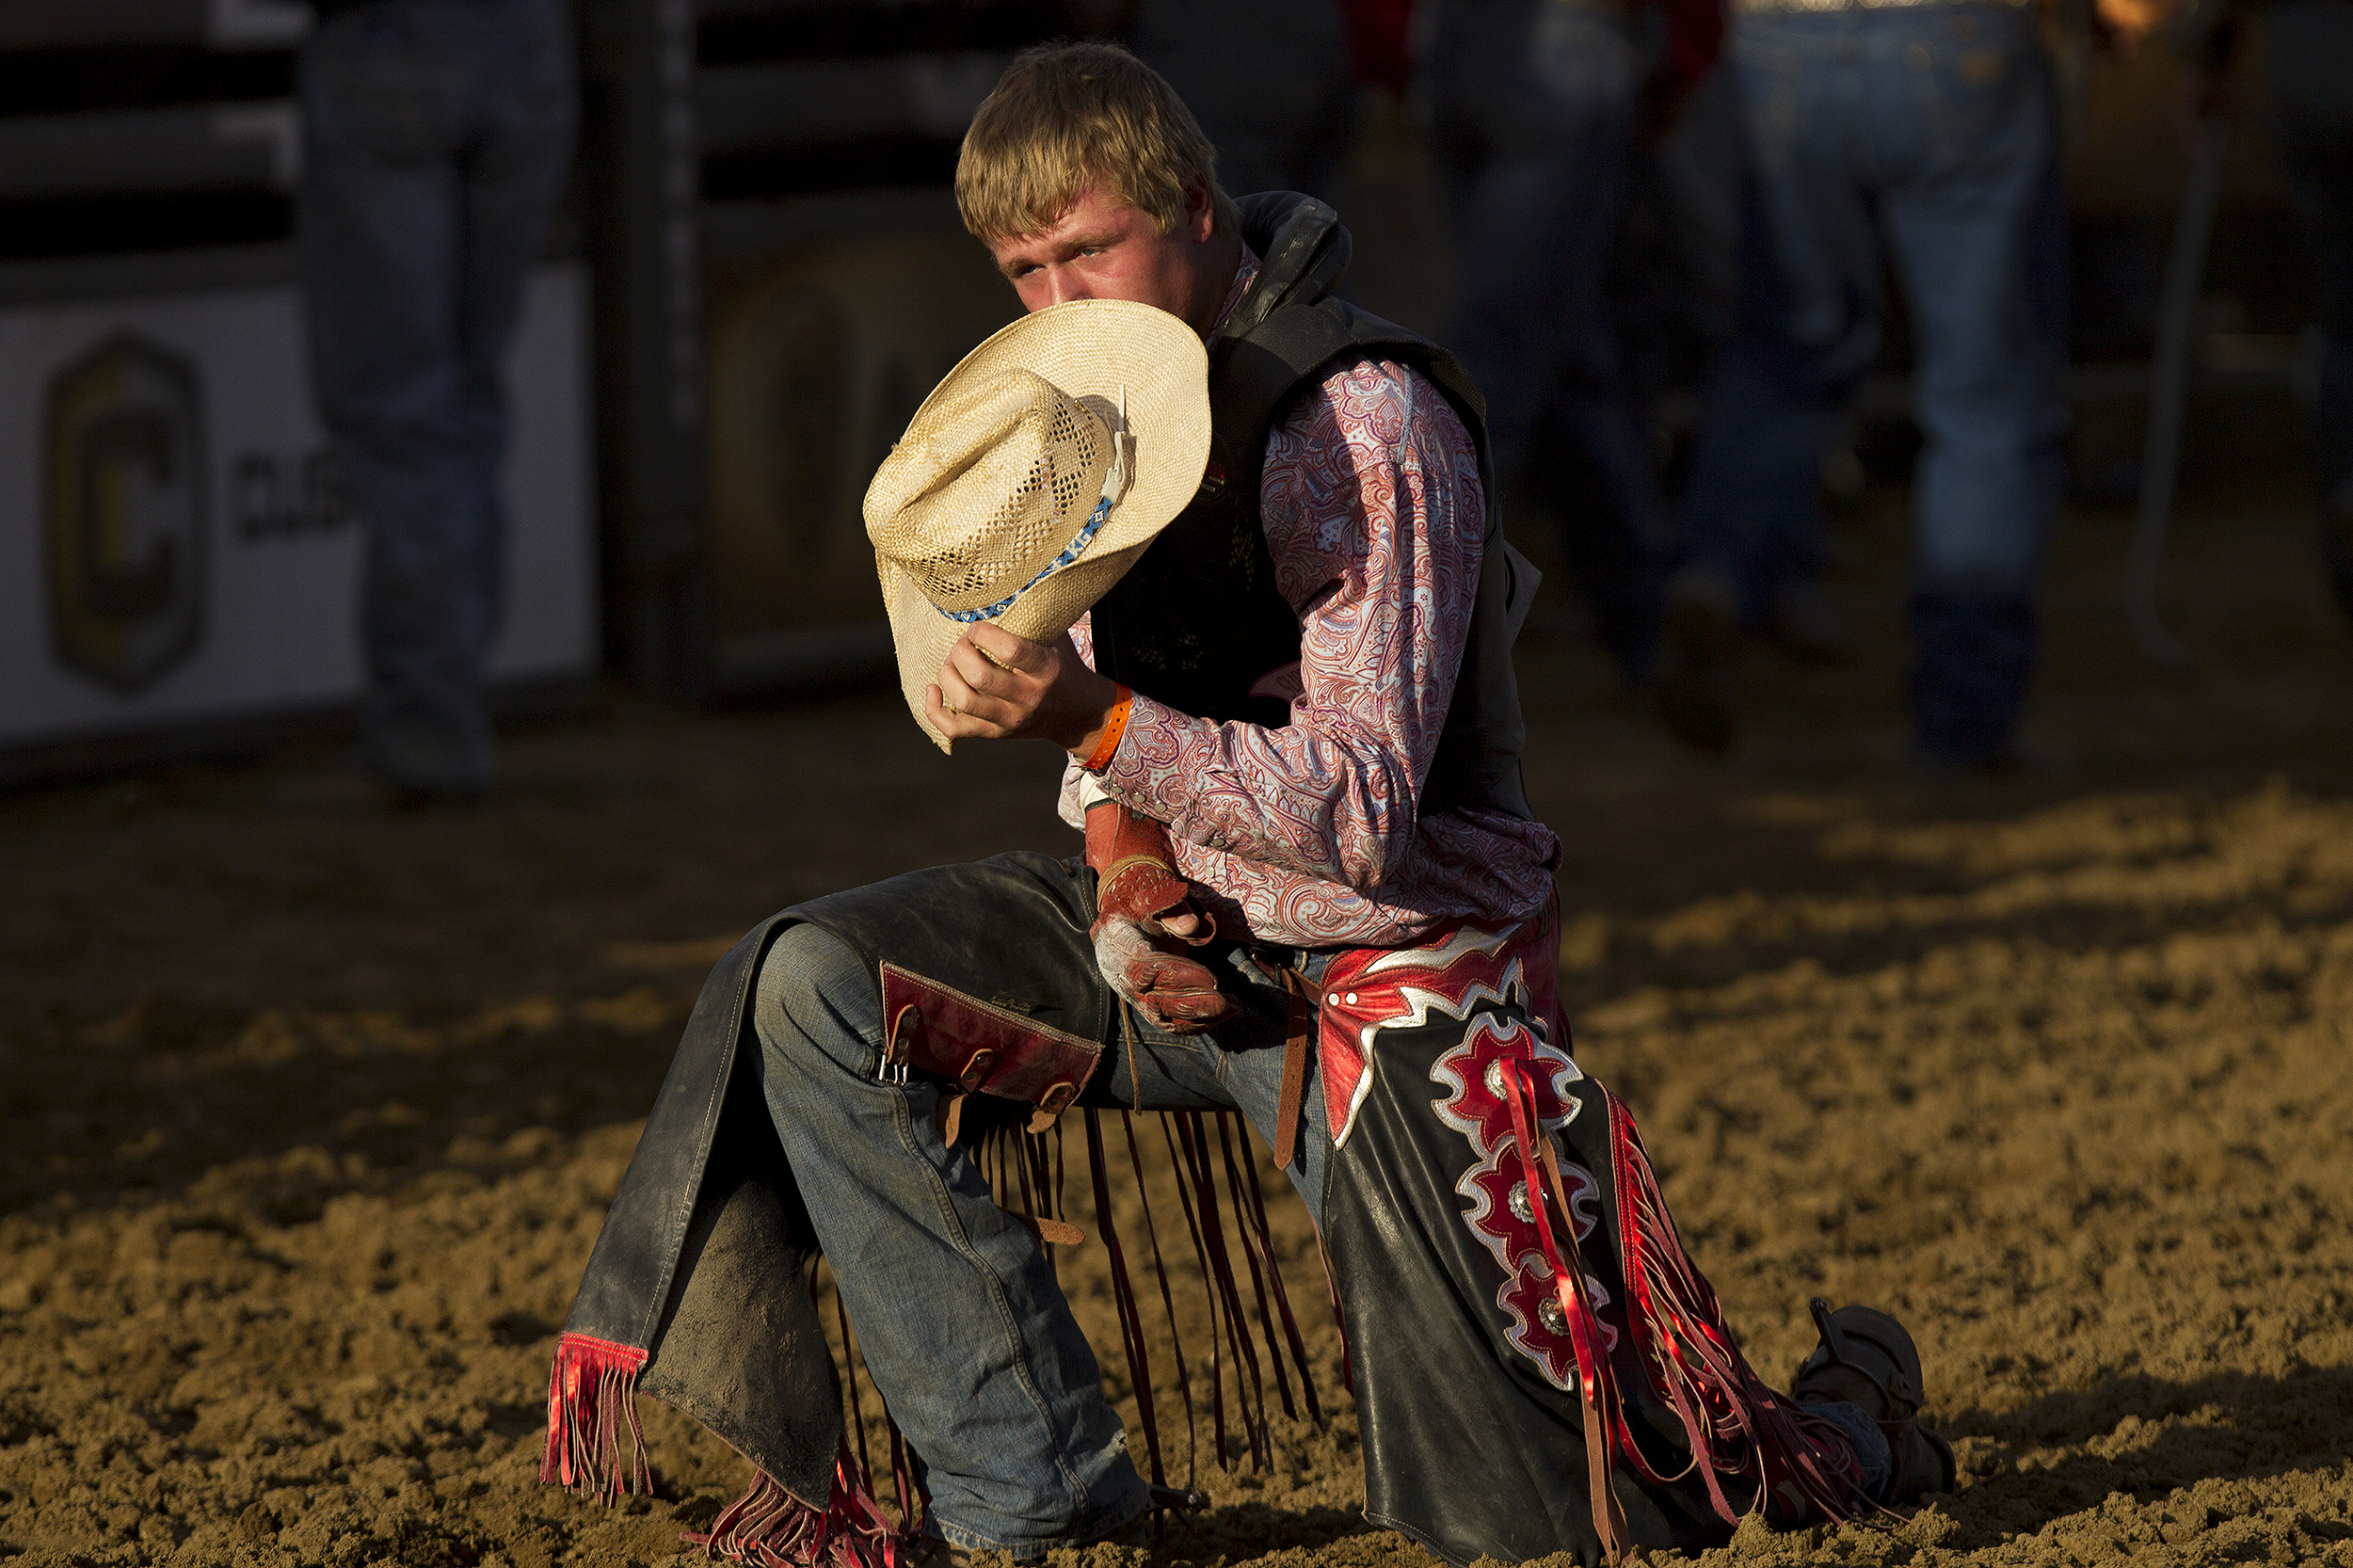 Kody Gregory of Cortez, Colo., prays after his bareback ride Thursday evening during the 2016 National High School Finals Rodeo at Cam-plex.